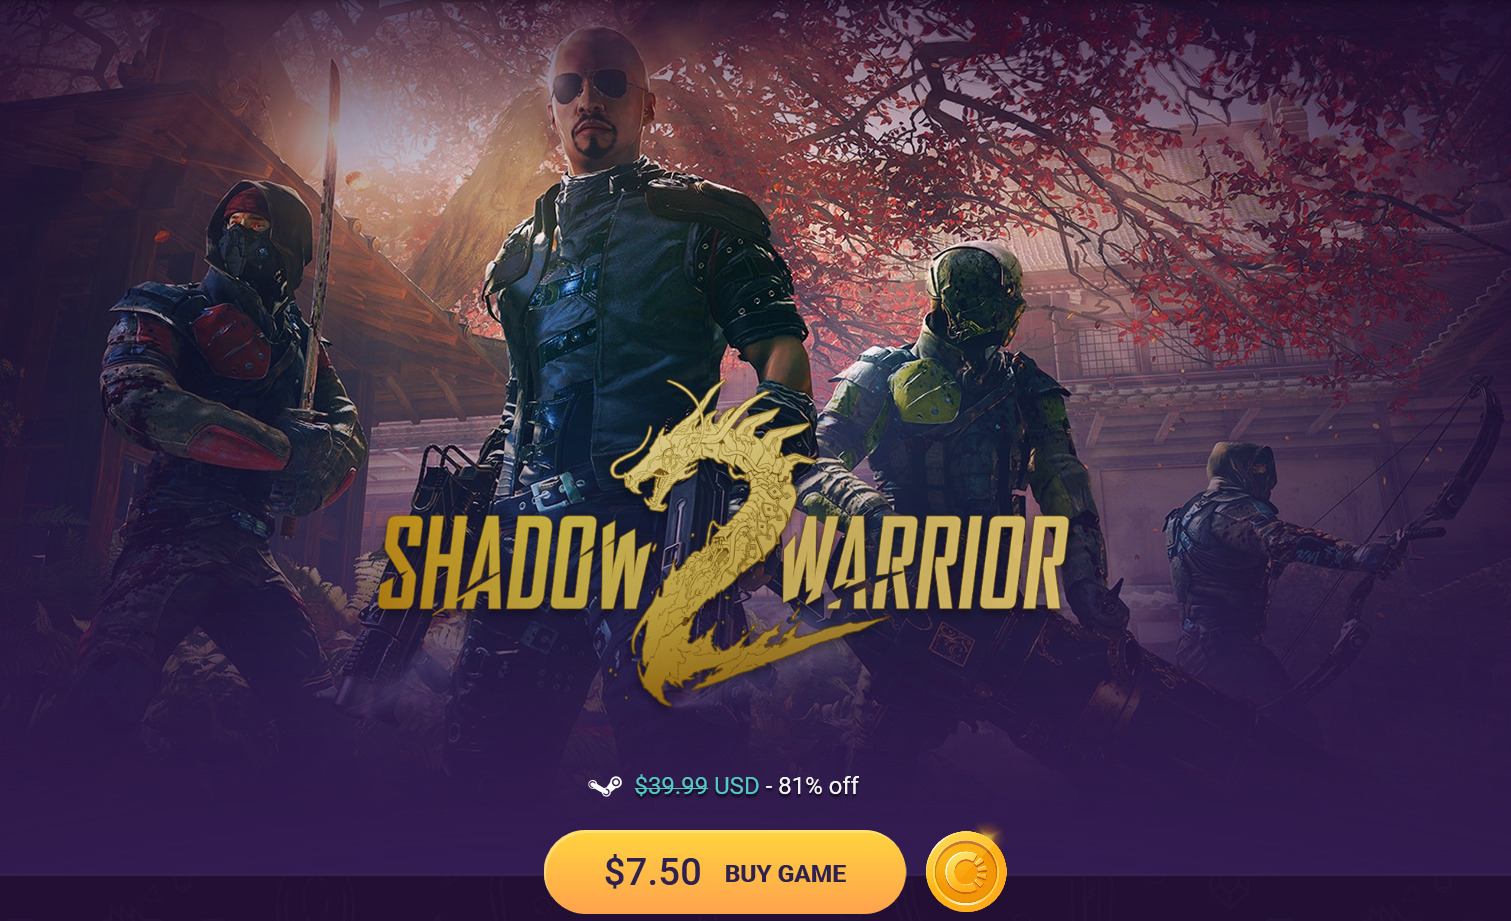 Screenshot_2019-06-03 Chrono gg - One game One amazing deal Every day at 9AM Pacific .jpg